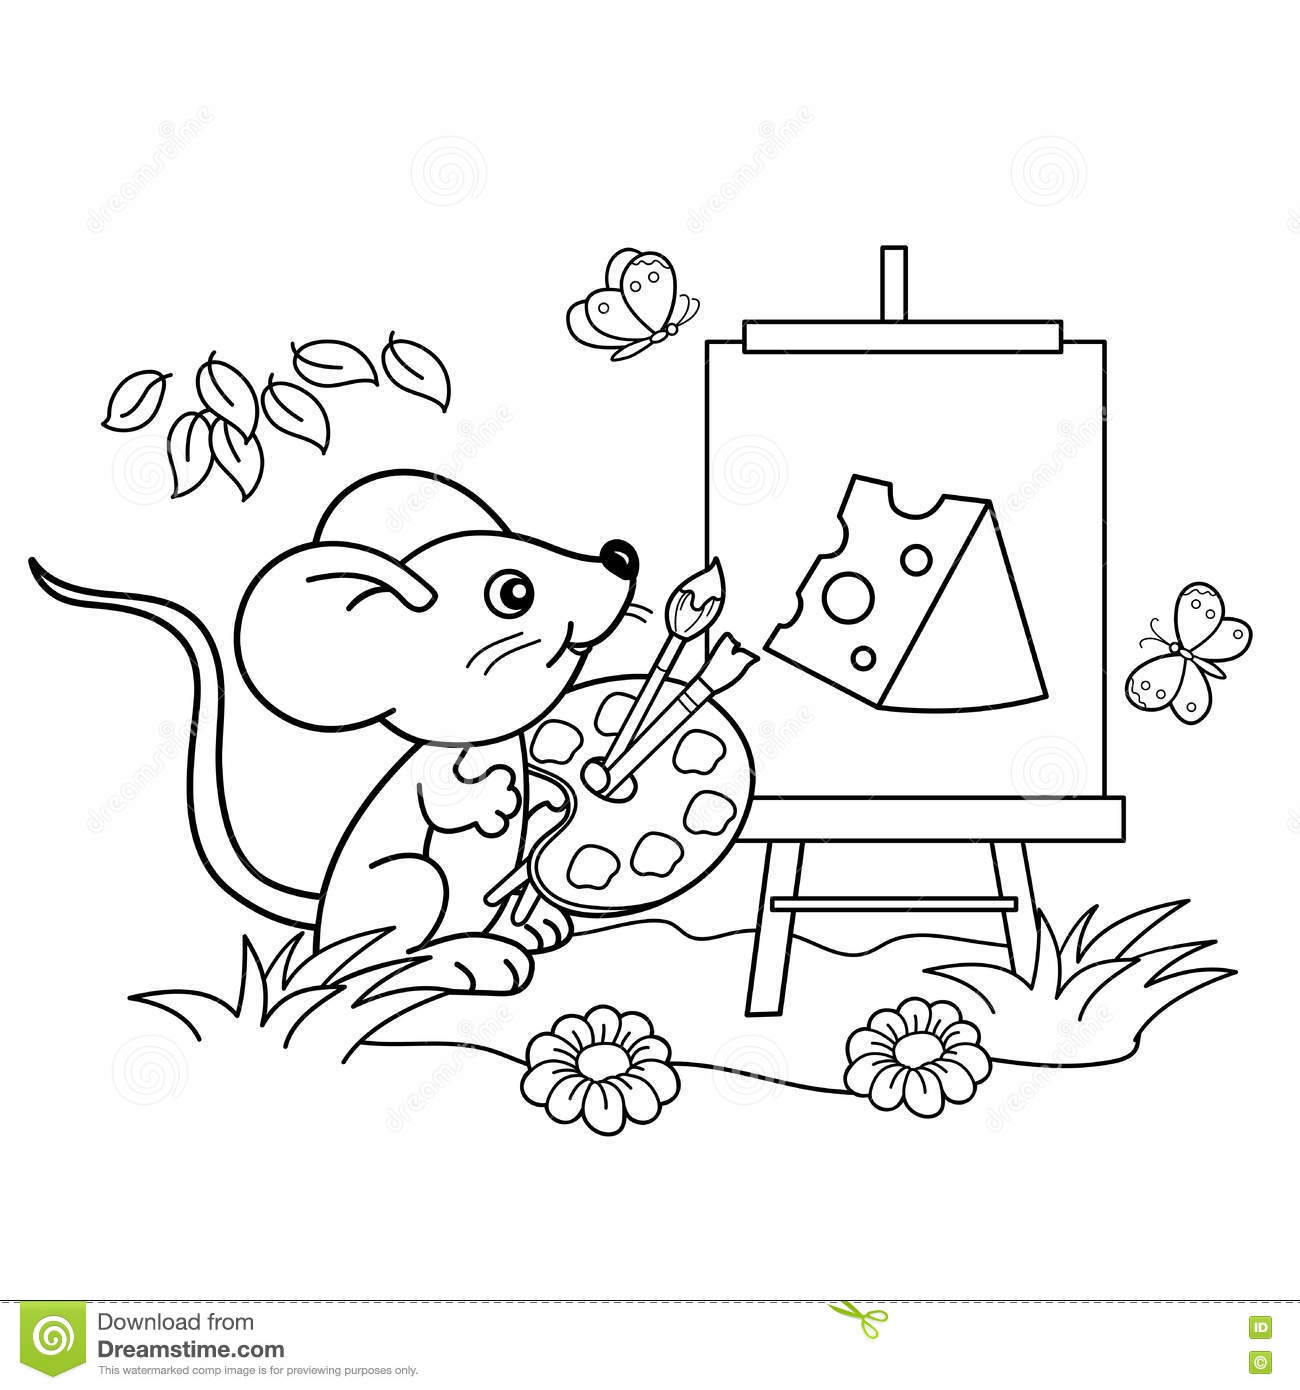 little mouse coloring pages - photo#11